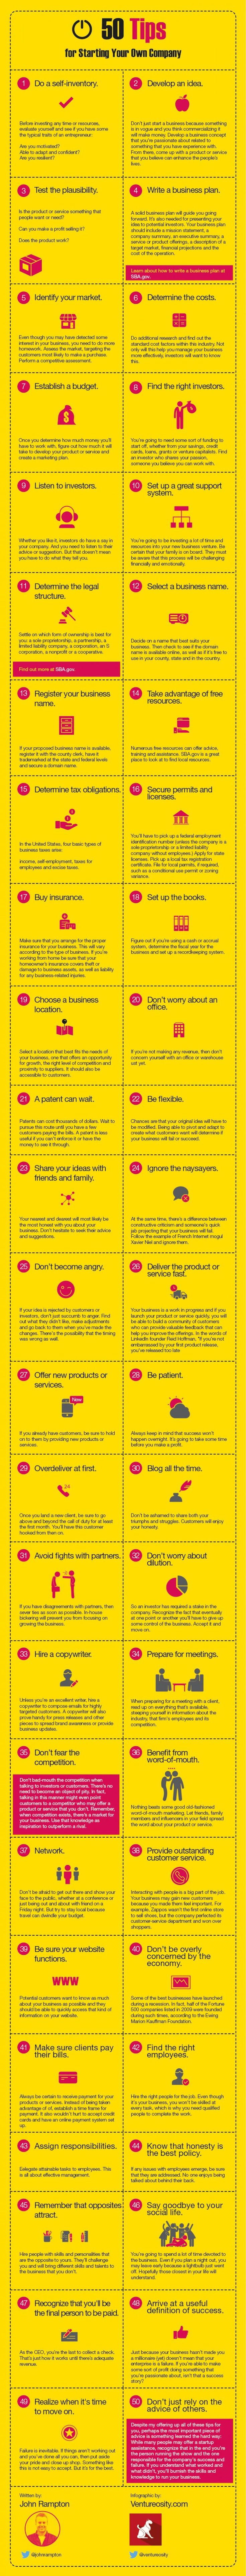 What Are 50 Startup Tips For Starting Your Own Business? #infographic